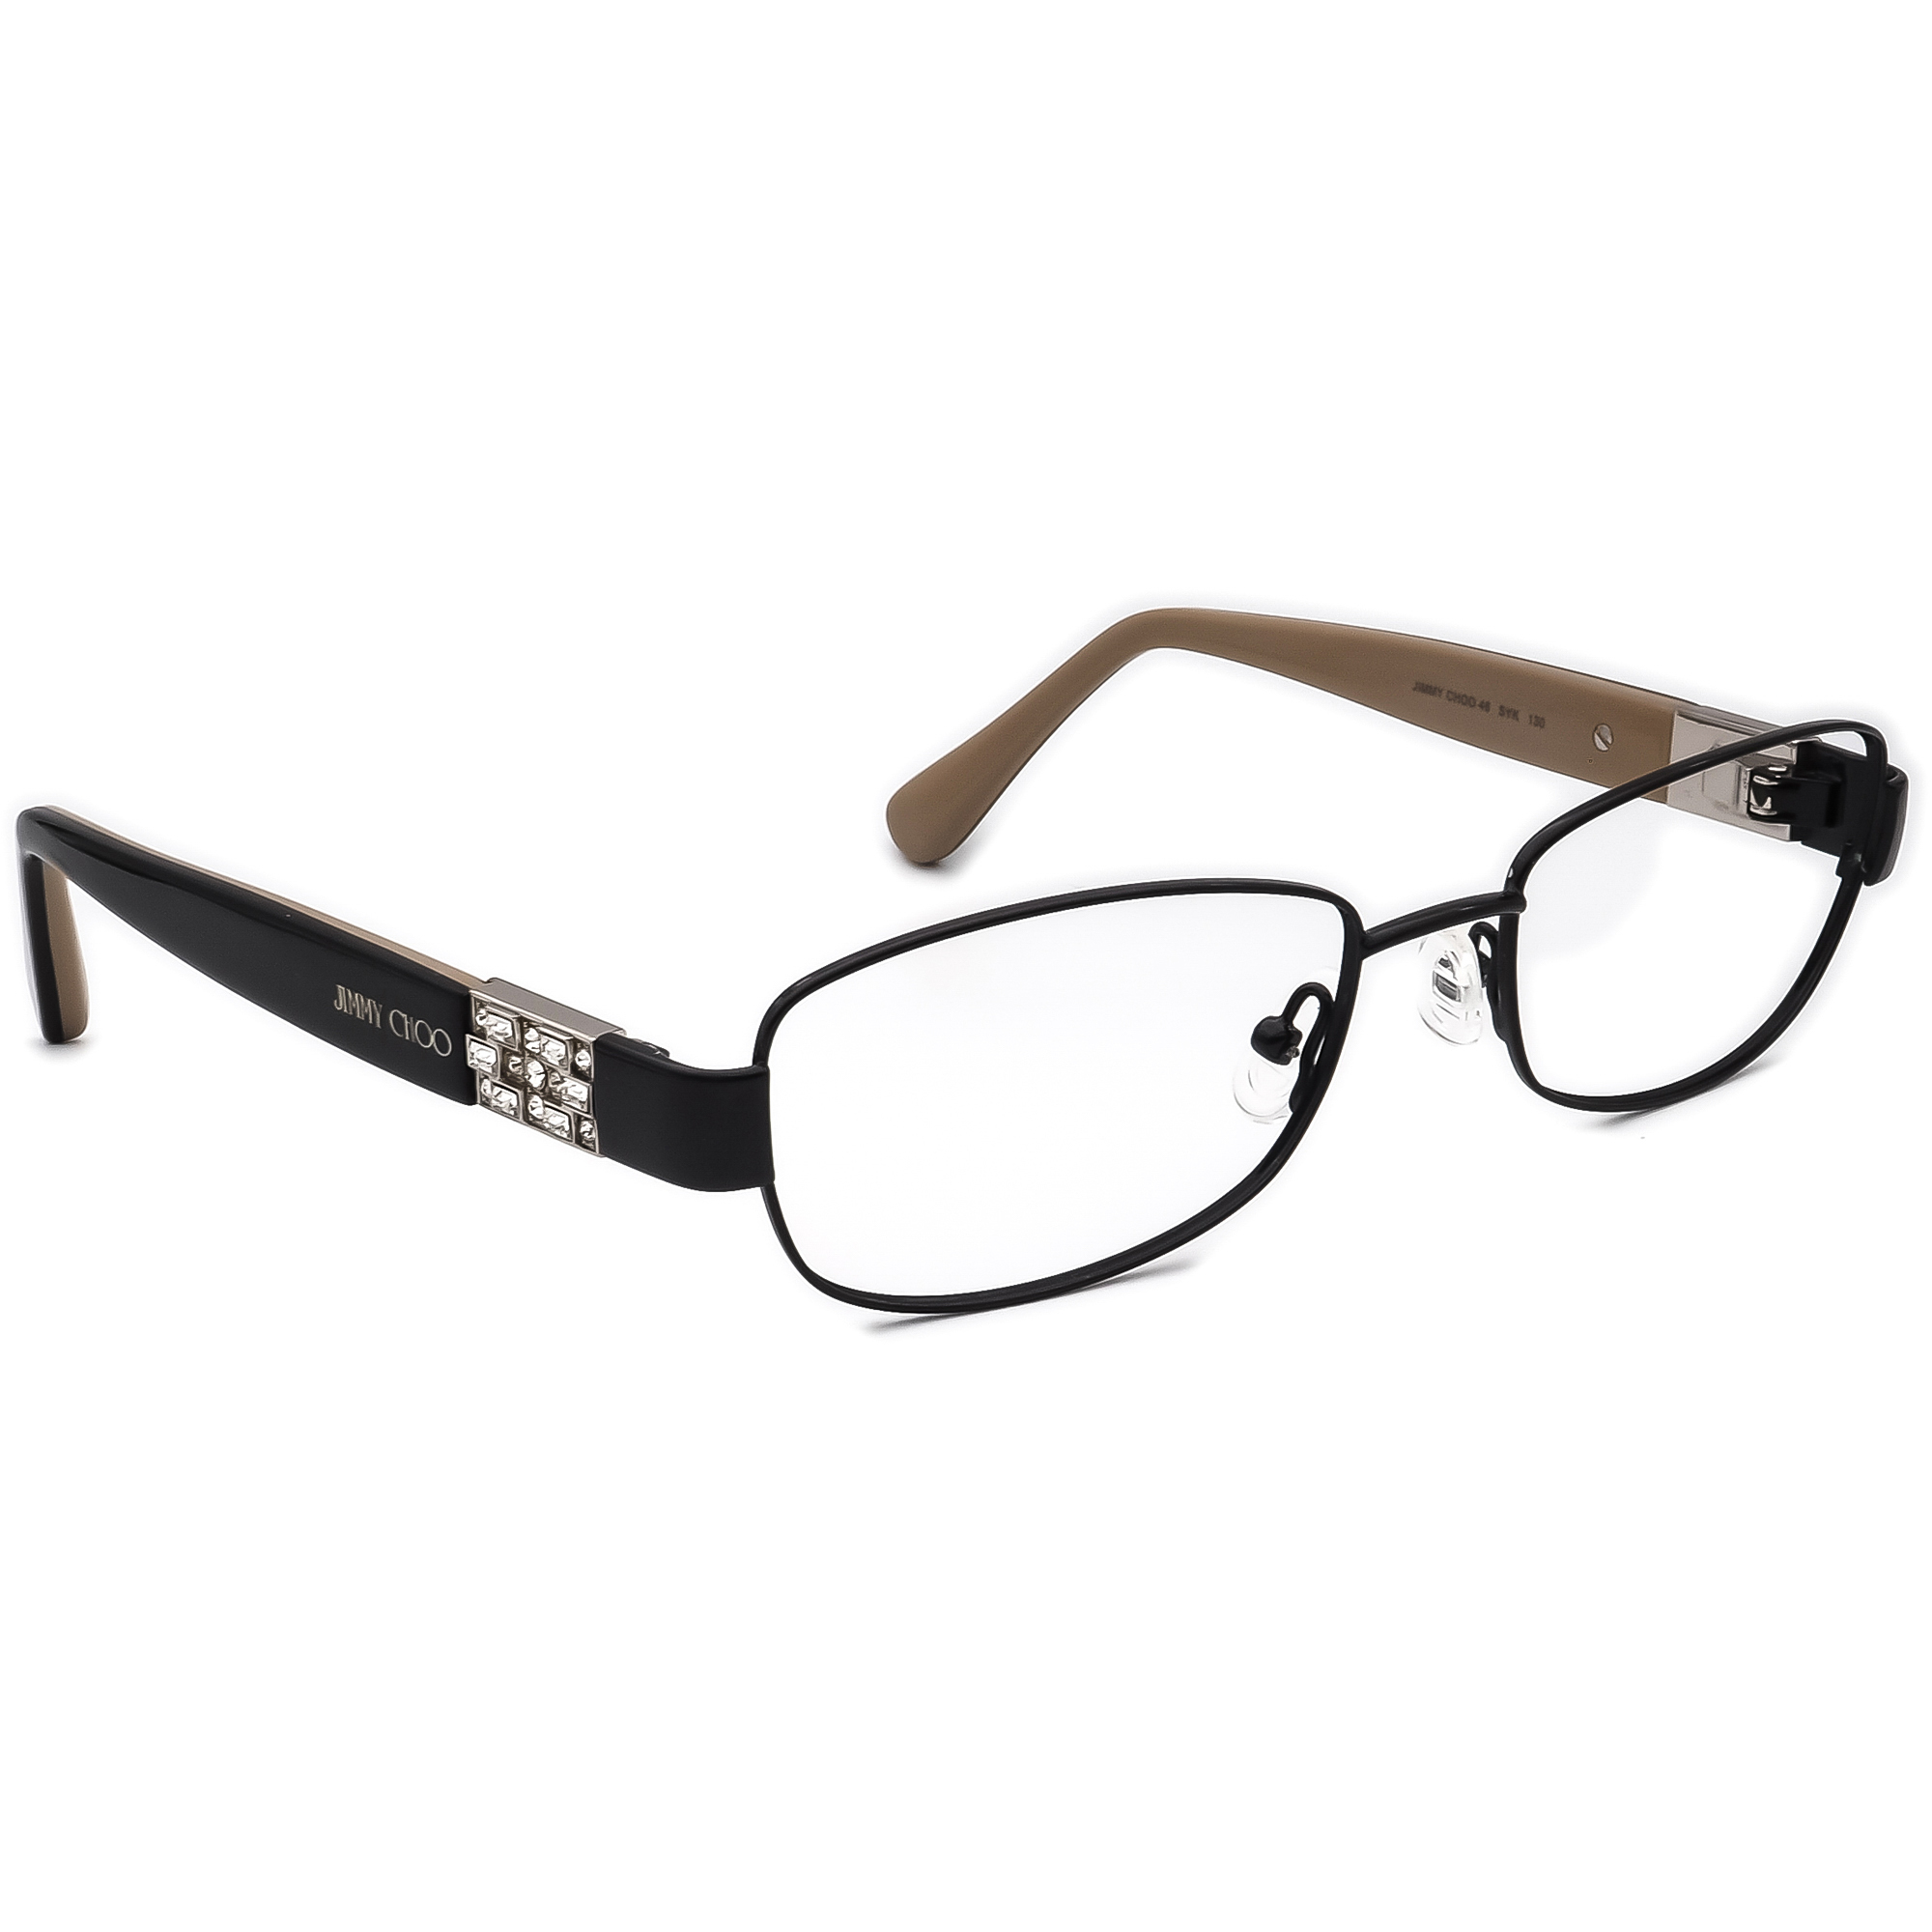 Jimmy Choo 46 SYK  Eyeglasses